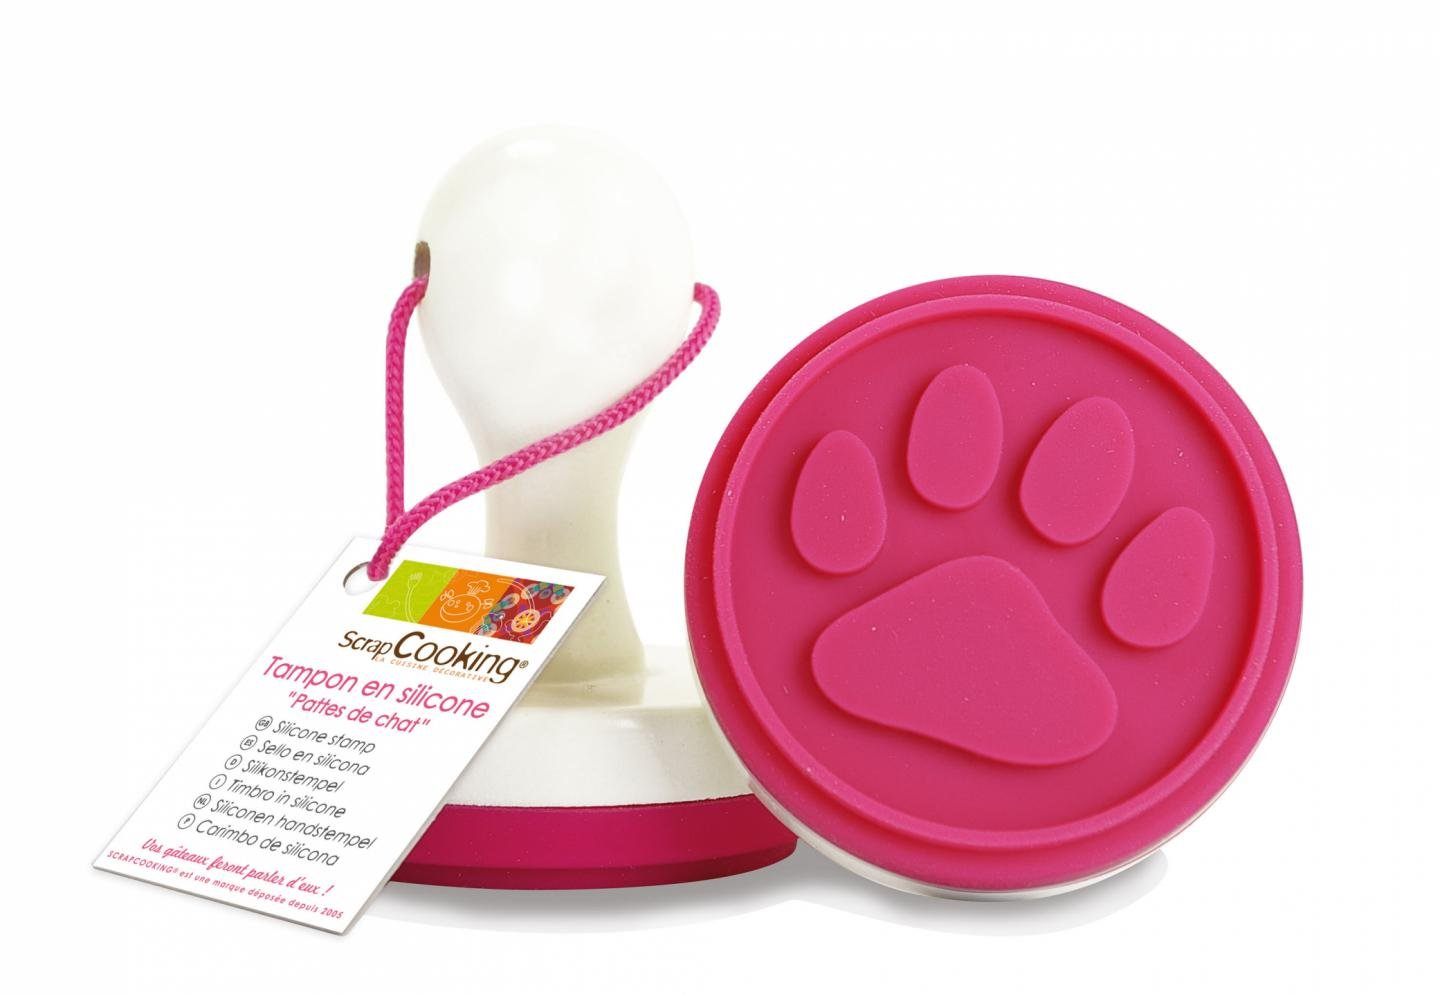 ScrapCooking Paw Silicone Stamp with Handle for Cookies and Fondant